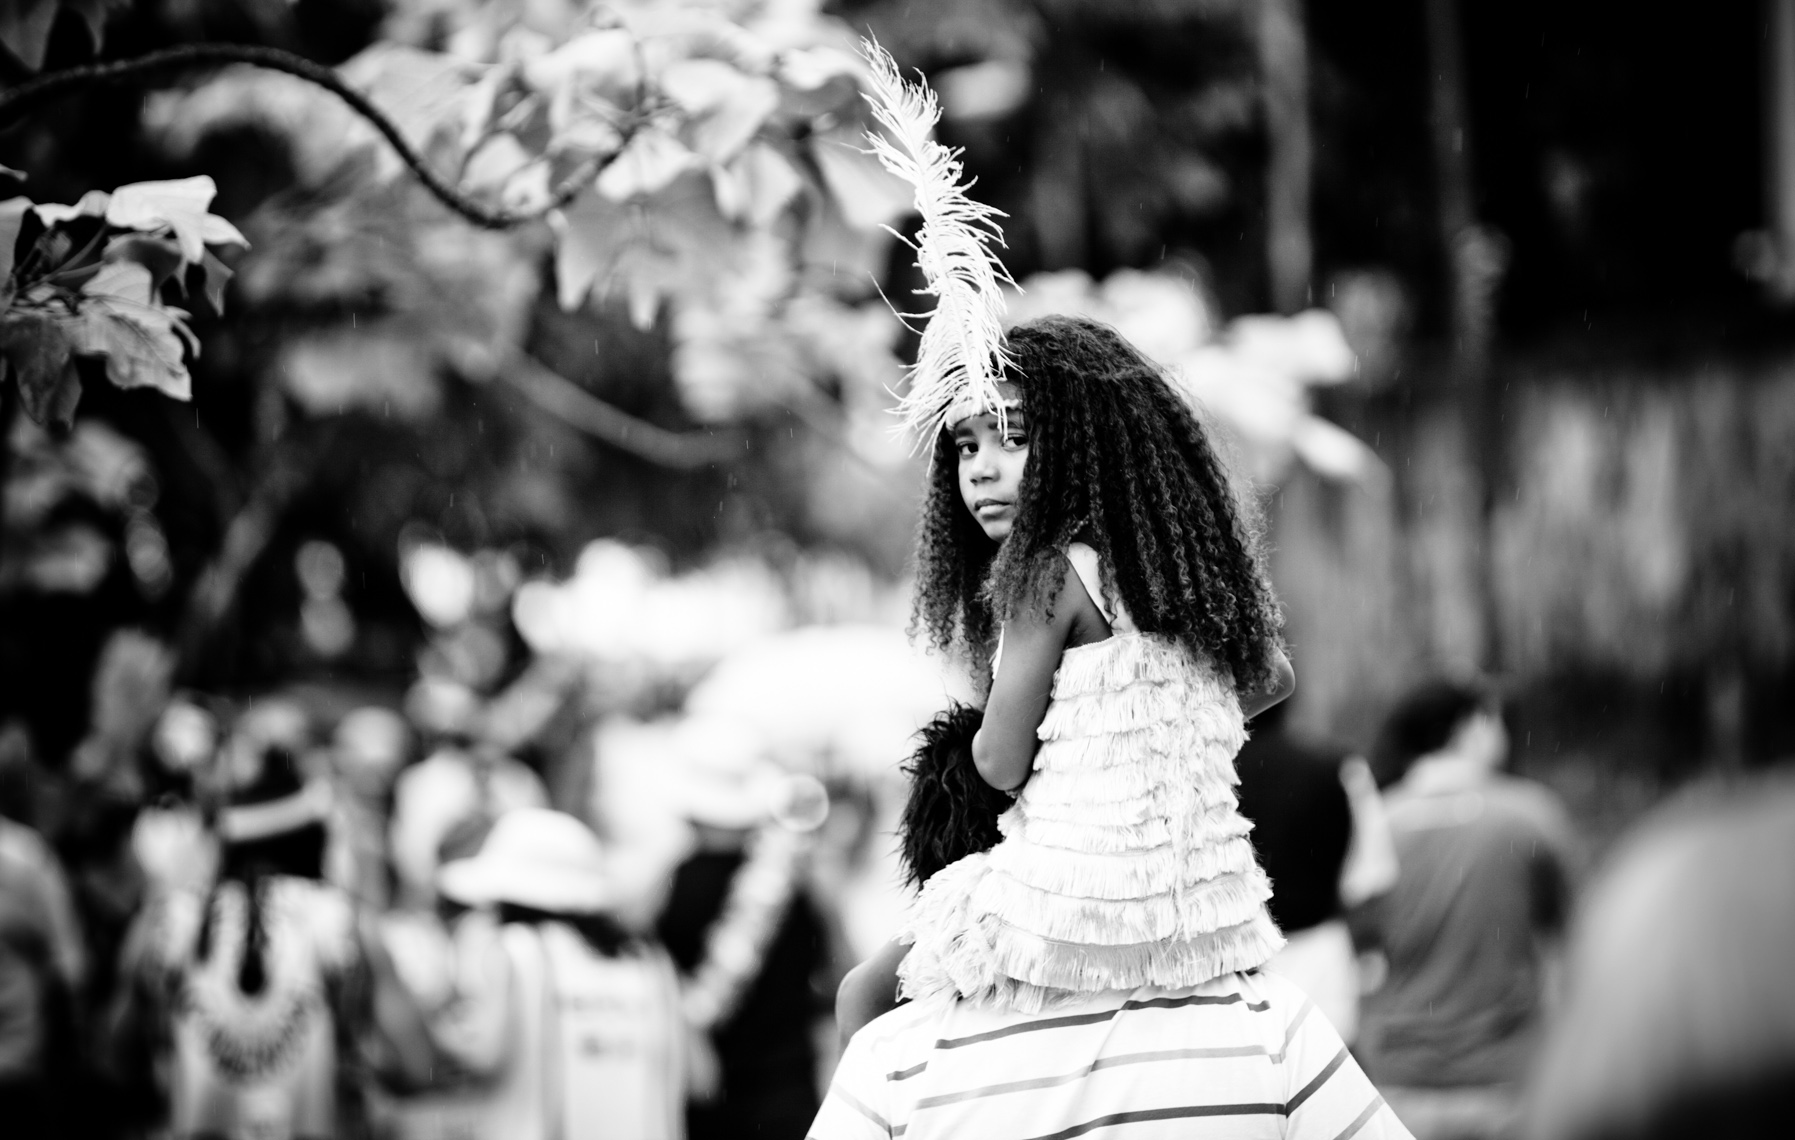 Travel photography by Forest Woodward in Rio Dejaniero Brazil during Carnival